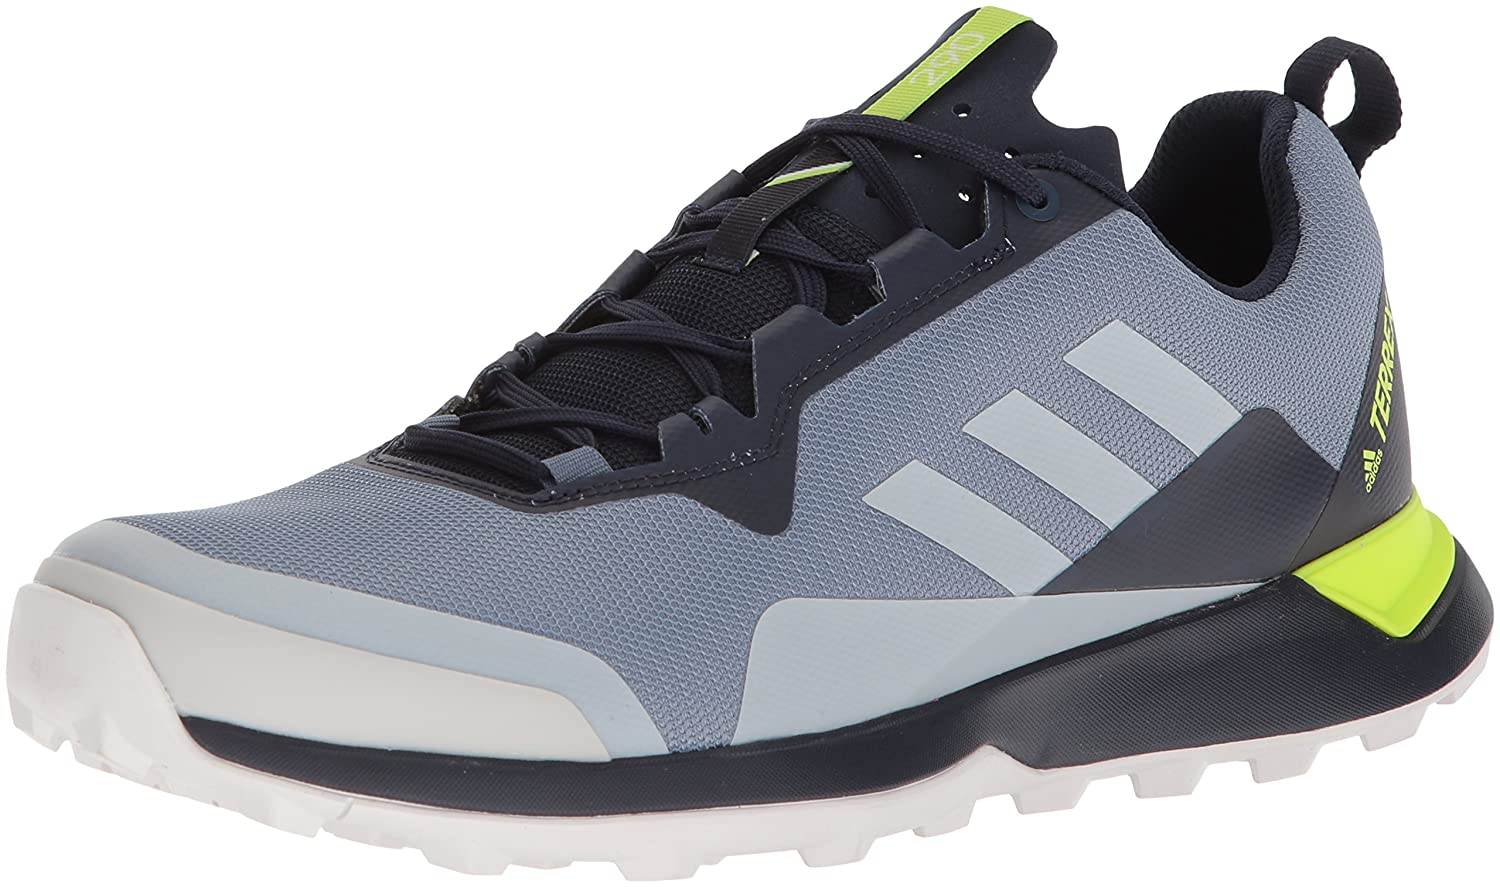 adidas outdoor Men's Terrex CMTK Walking Shoe 8.5 M US|Raw Steel/Grey One/Orange